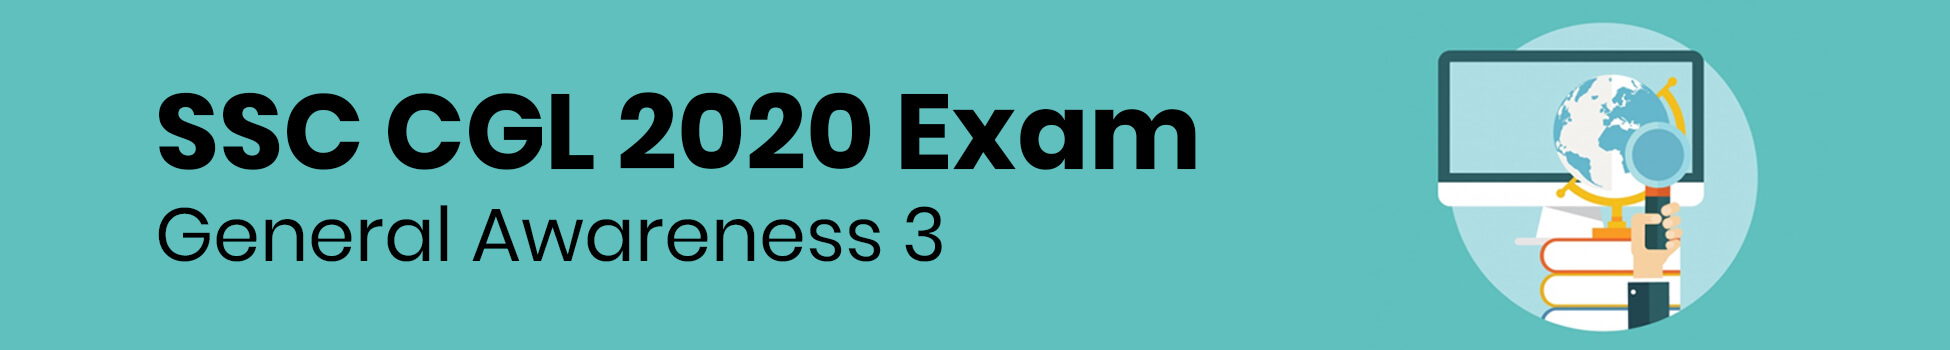 SSC CGL 2020 Exam - General Awareness 3